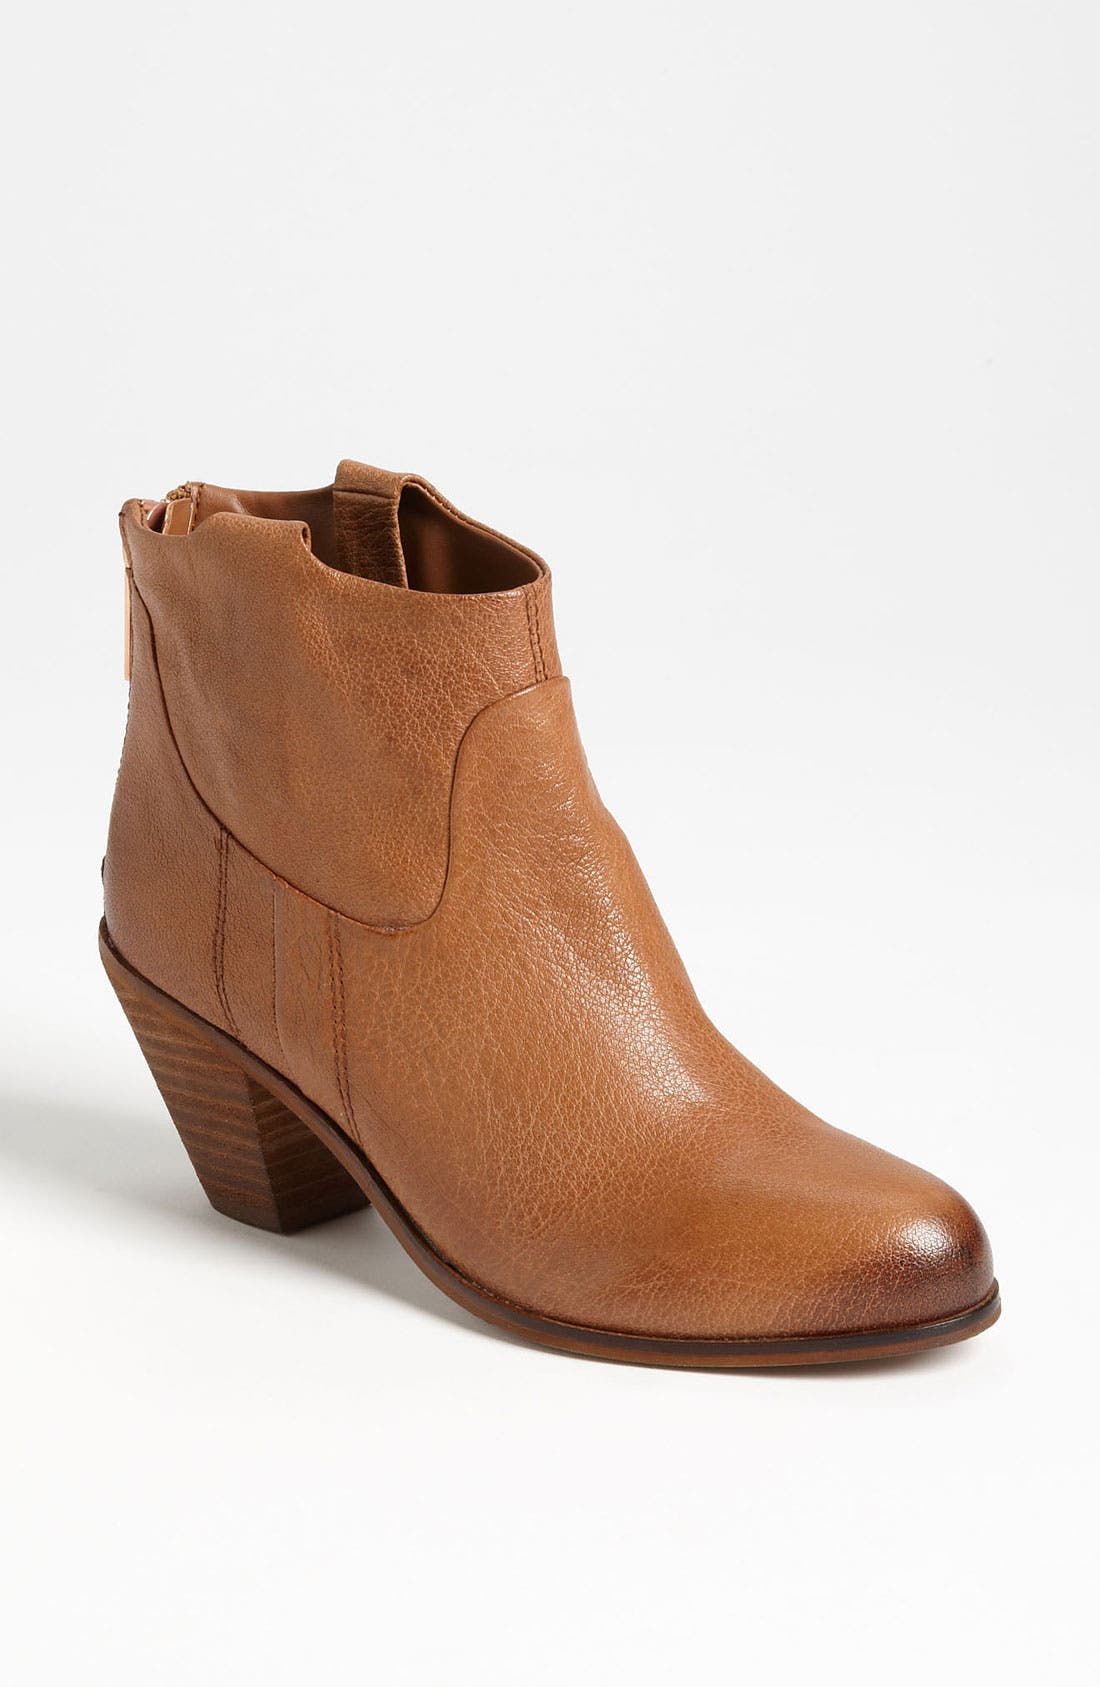 Alternate Image 1 Selected - Sam Edelman 'Lisle' Boot